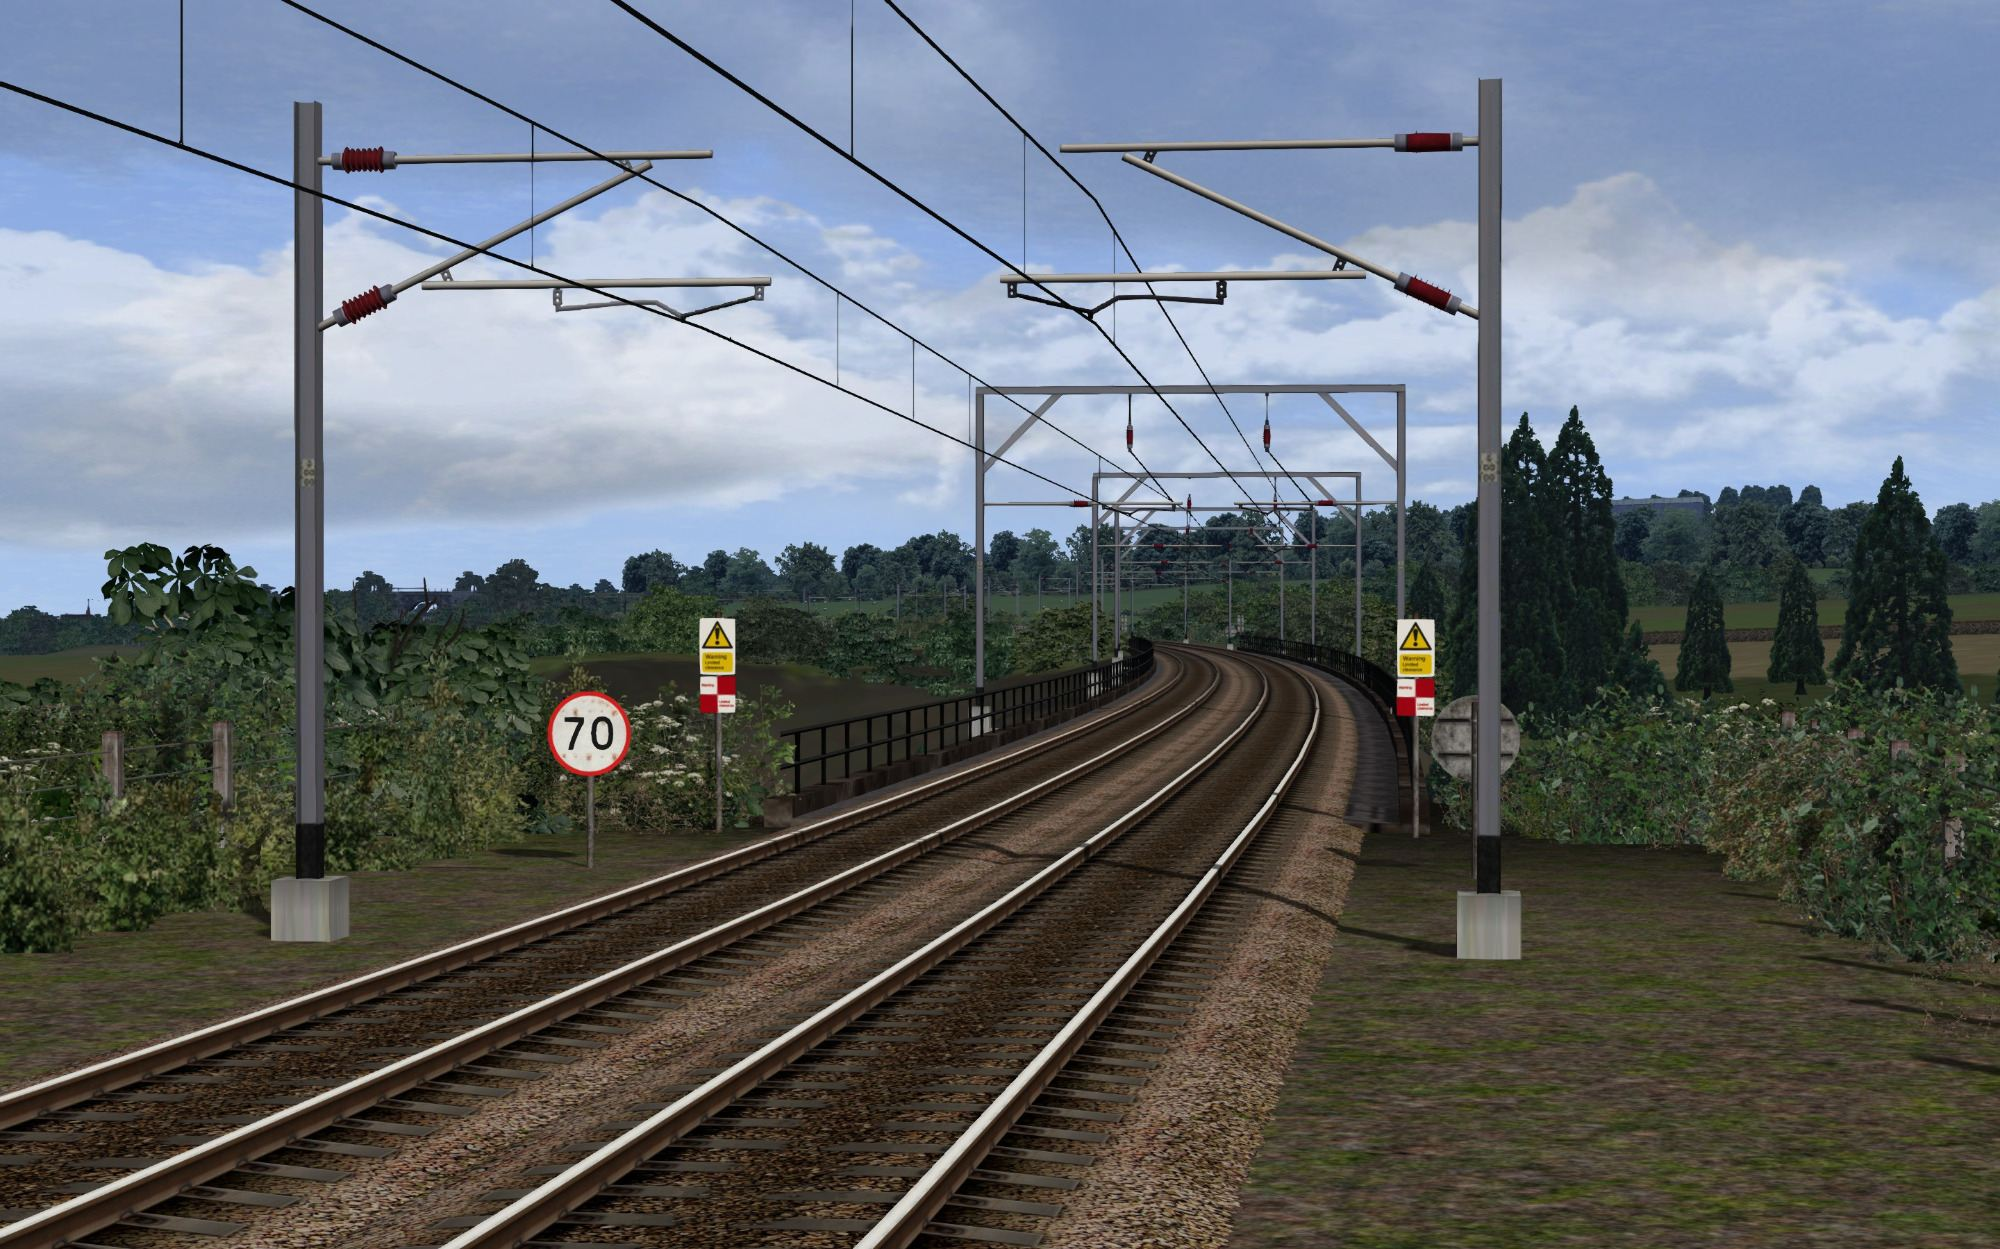 Image showing screenshot of the free Carstairs extension of this route, available here at DPSimulation